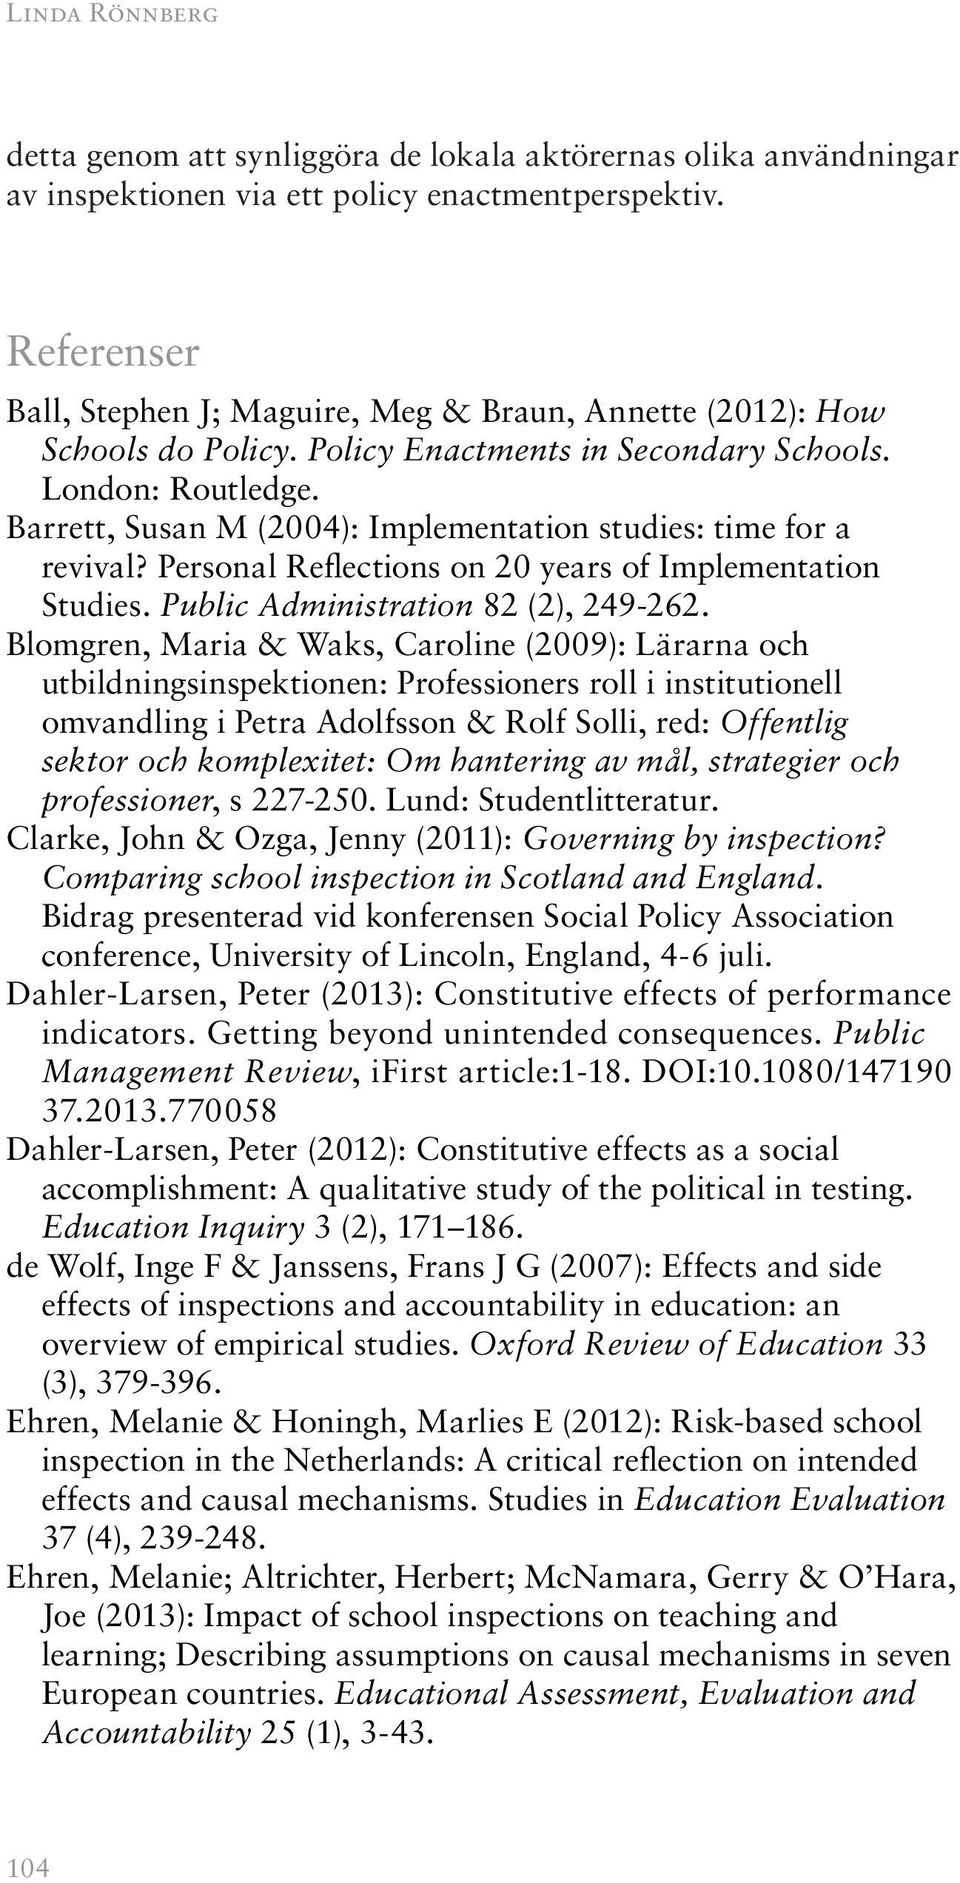 Barrett, Susan M (2004): Implementation studies: time for a revival? Personal Reflections on 20 years of Implementation Studies. Public Administration 82 (2), 249-262.